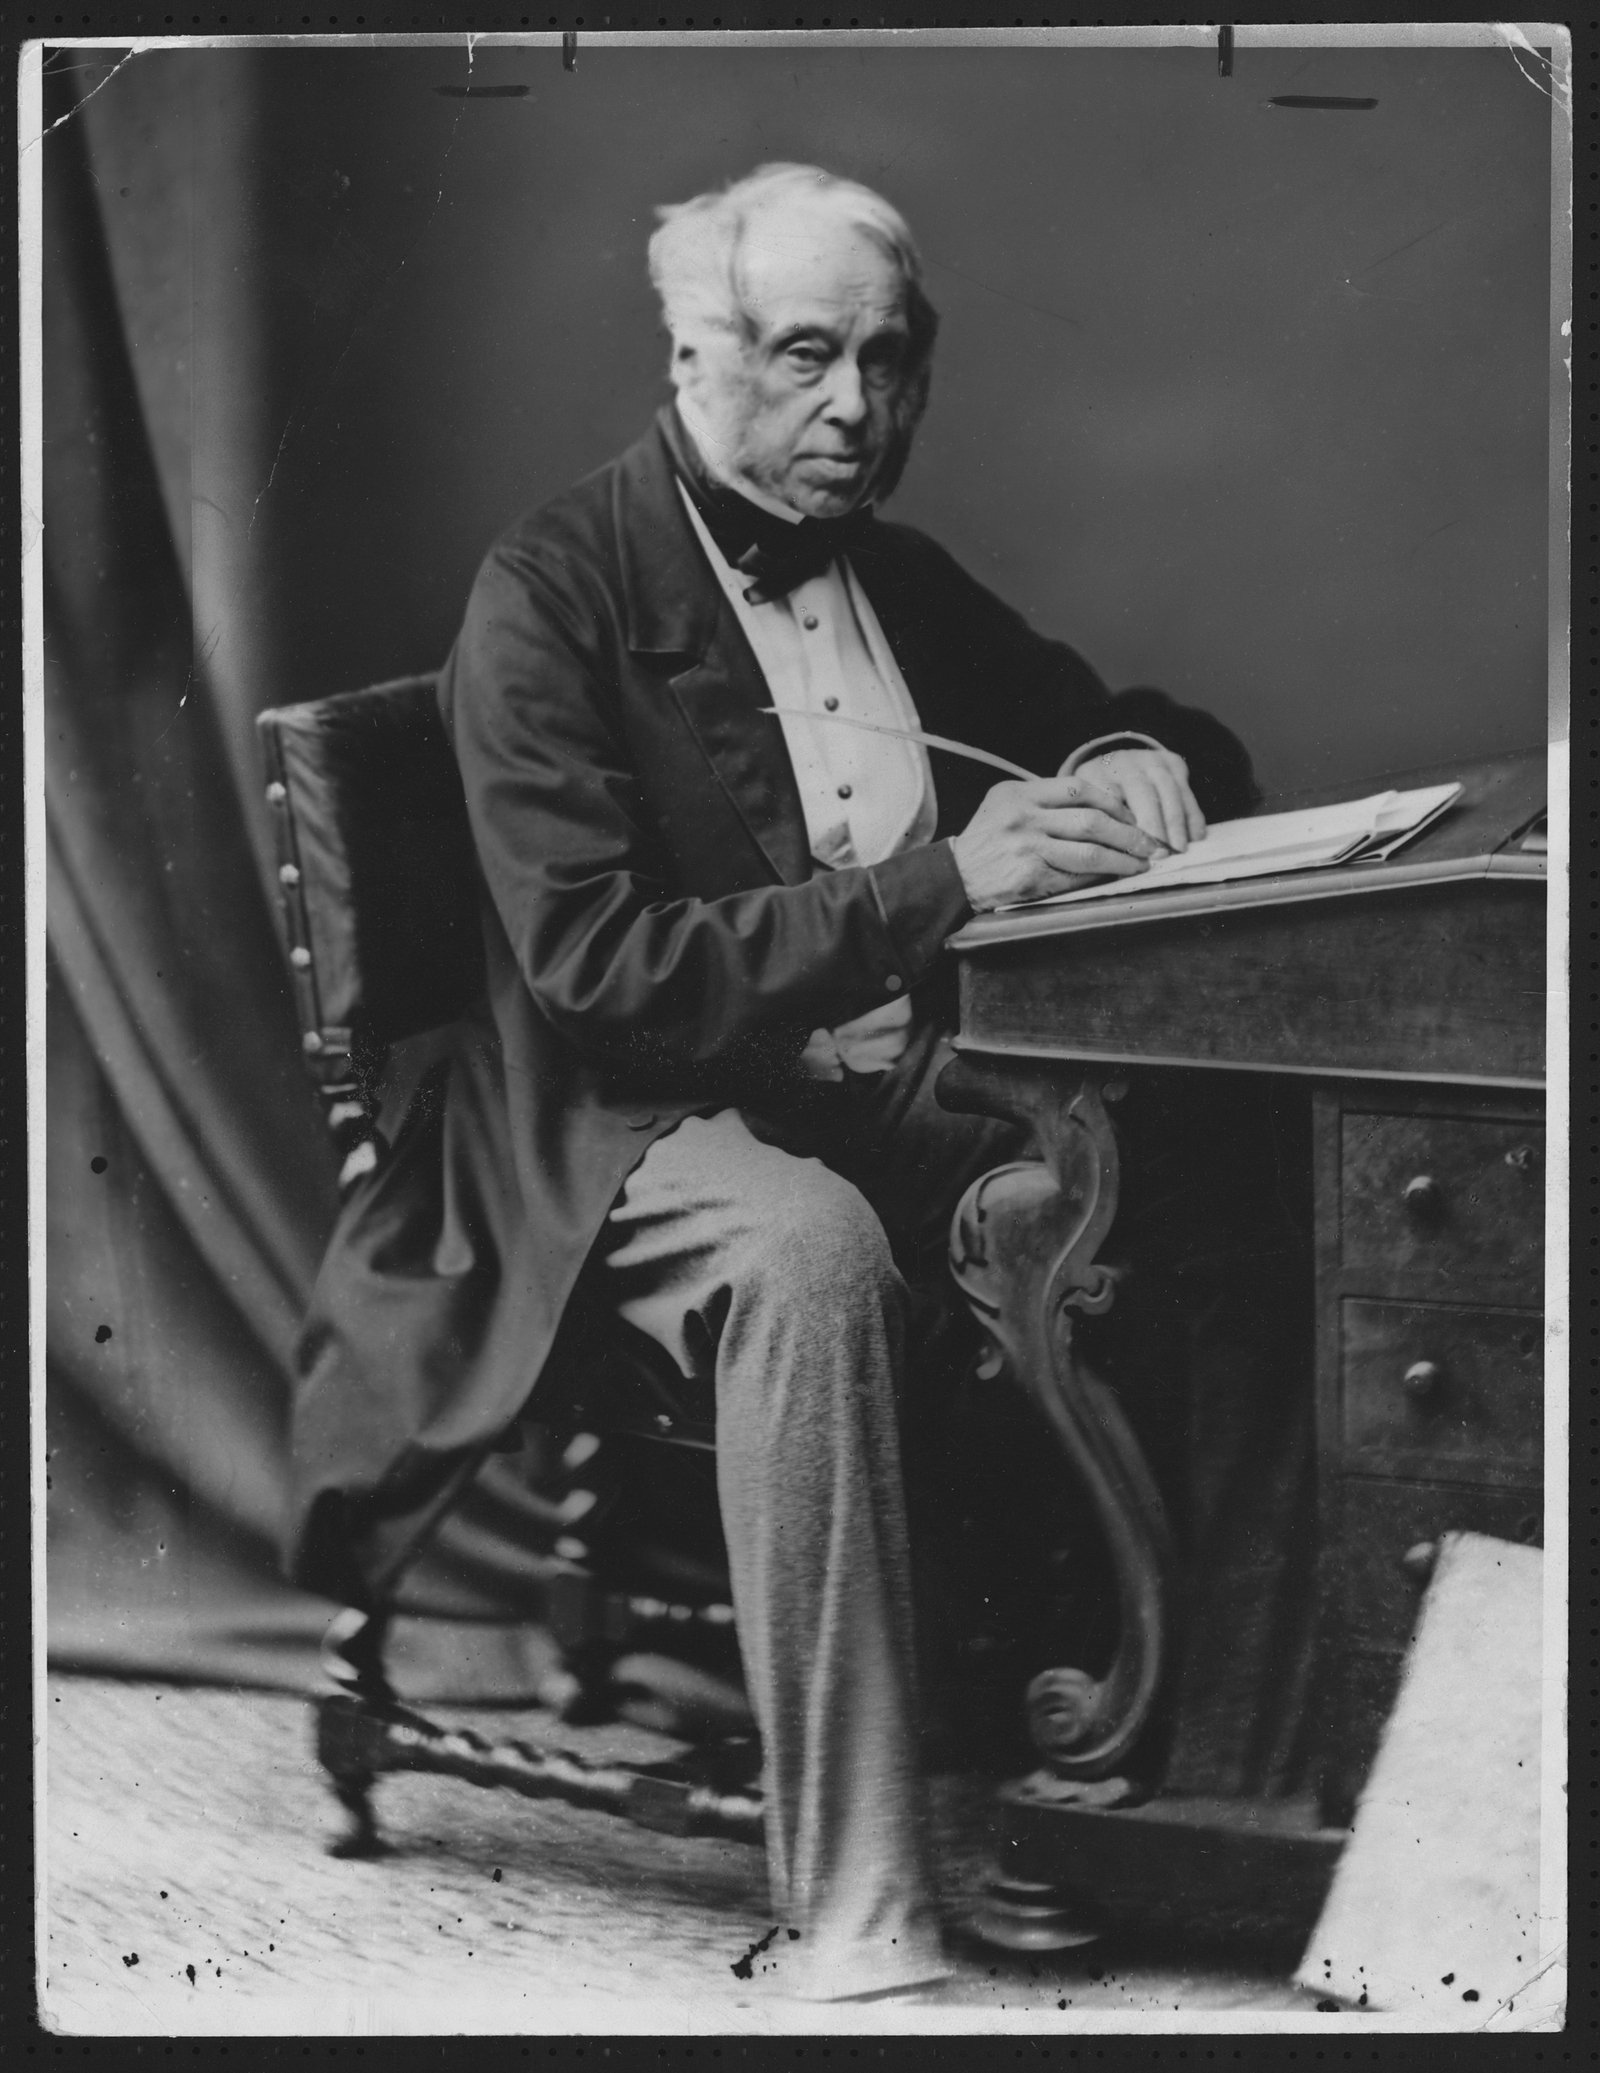 Image - Landowner and later British Prime Minister Henry John Temple Palmerston, shown here in 1860. Photo: Hulton-Deutsch Collection/CORBIS/Corbis via Getty Images